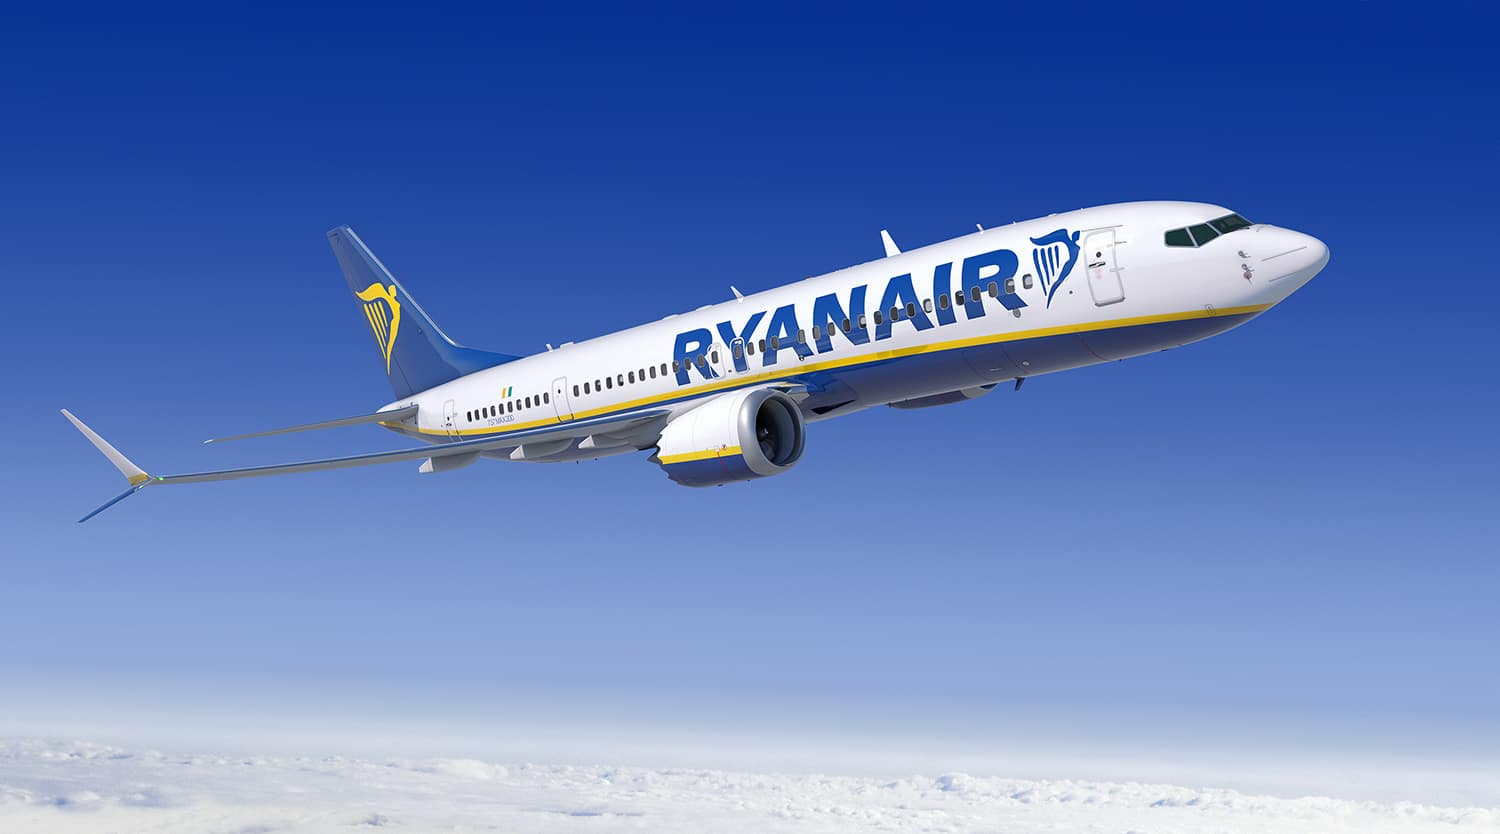 conclusion o ryanair 10 introduction ryanair - first europe's low cost budget airline that took over  ryanair belongs to cost leadership strategy and is a leader of.